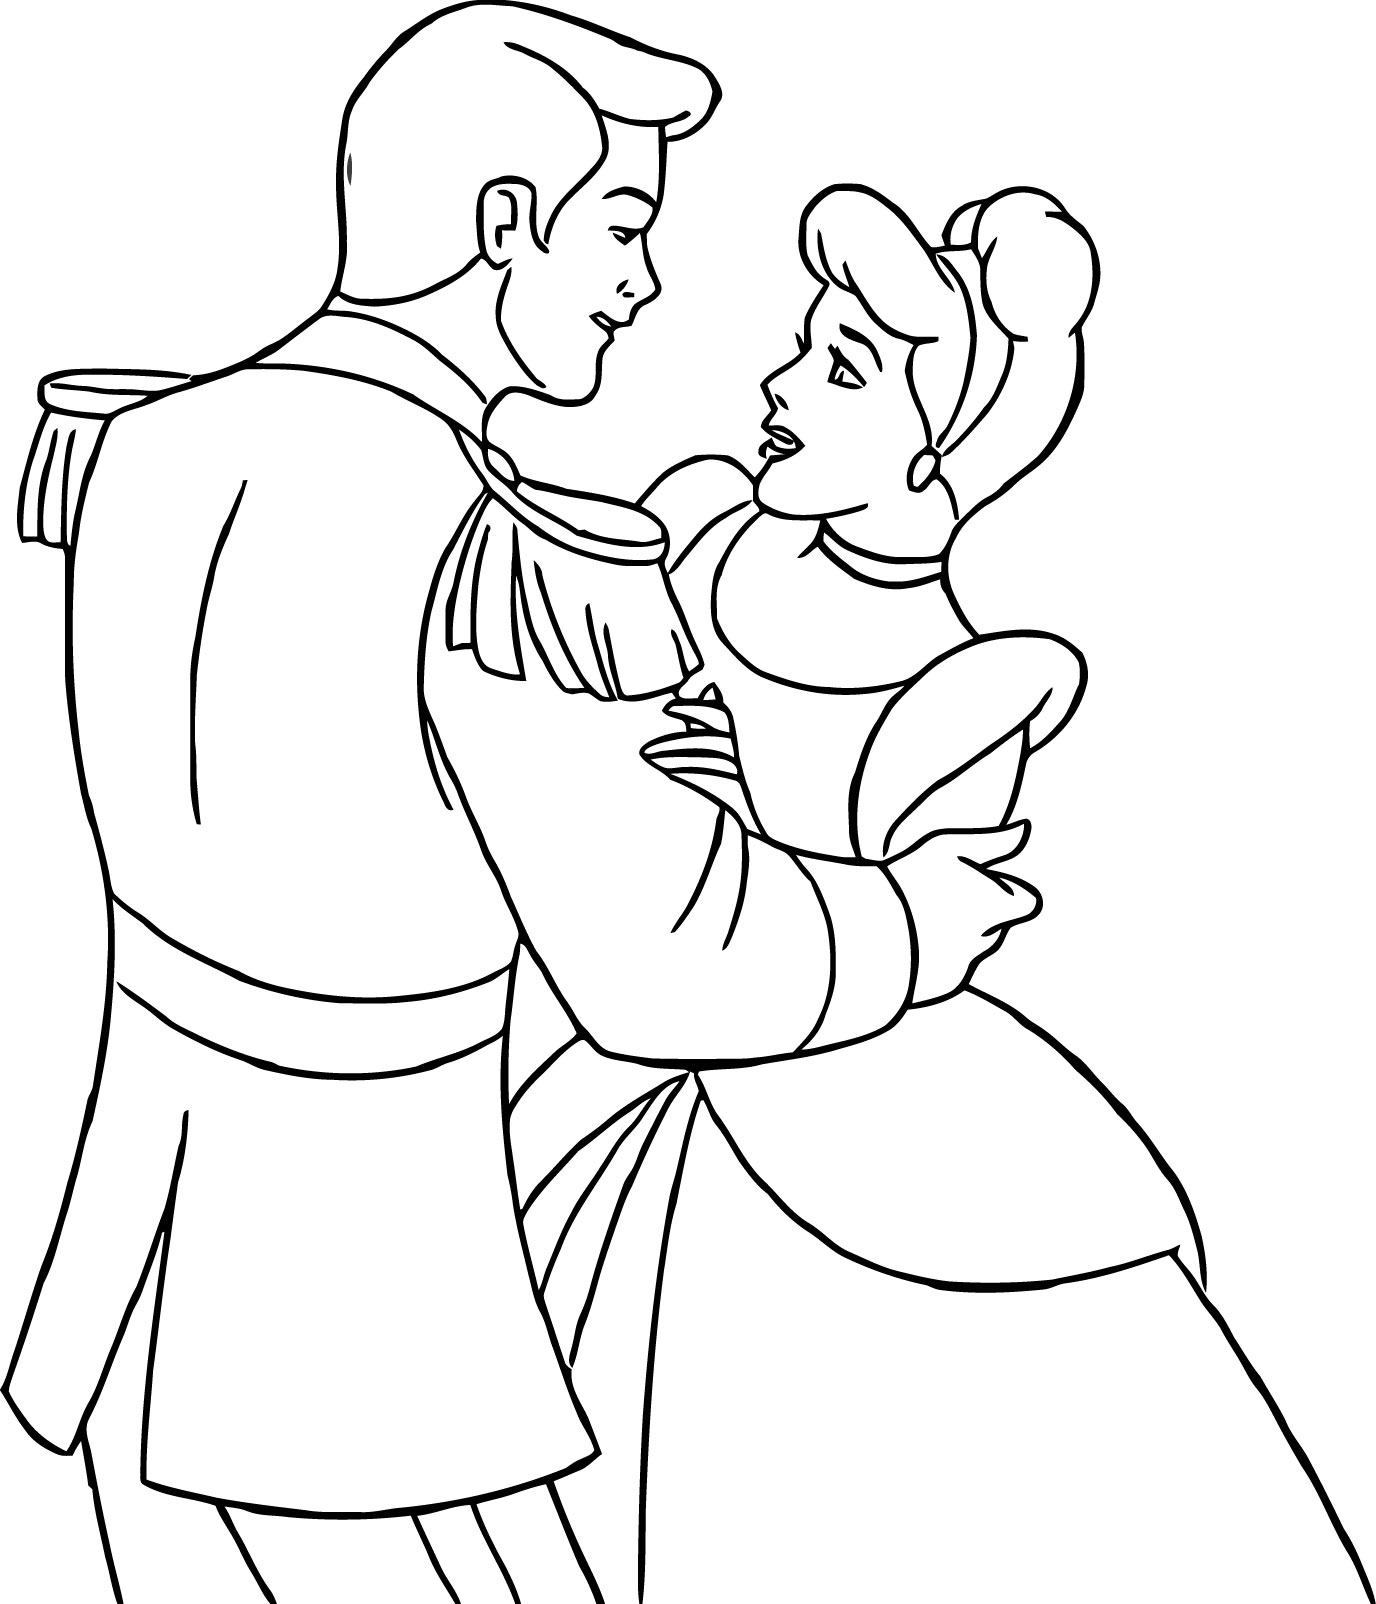 cinderella color page - cinderella and prince charming coloring pages